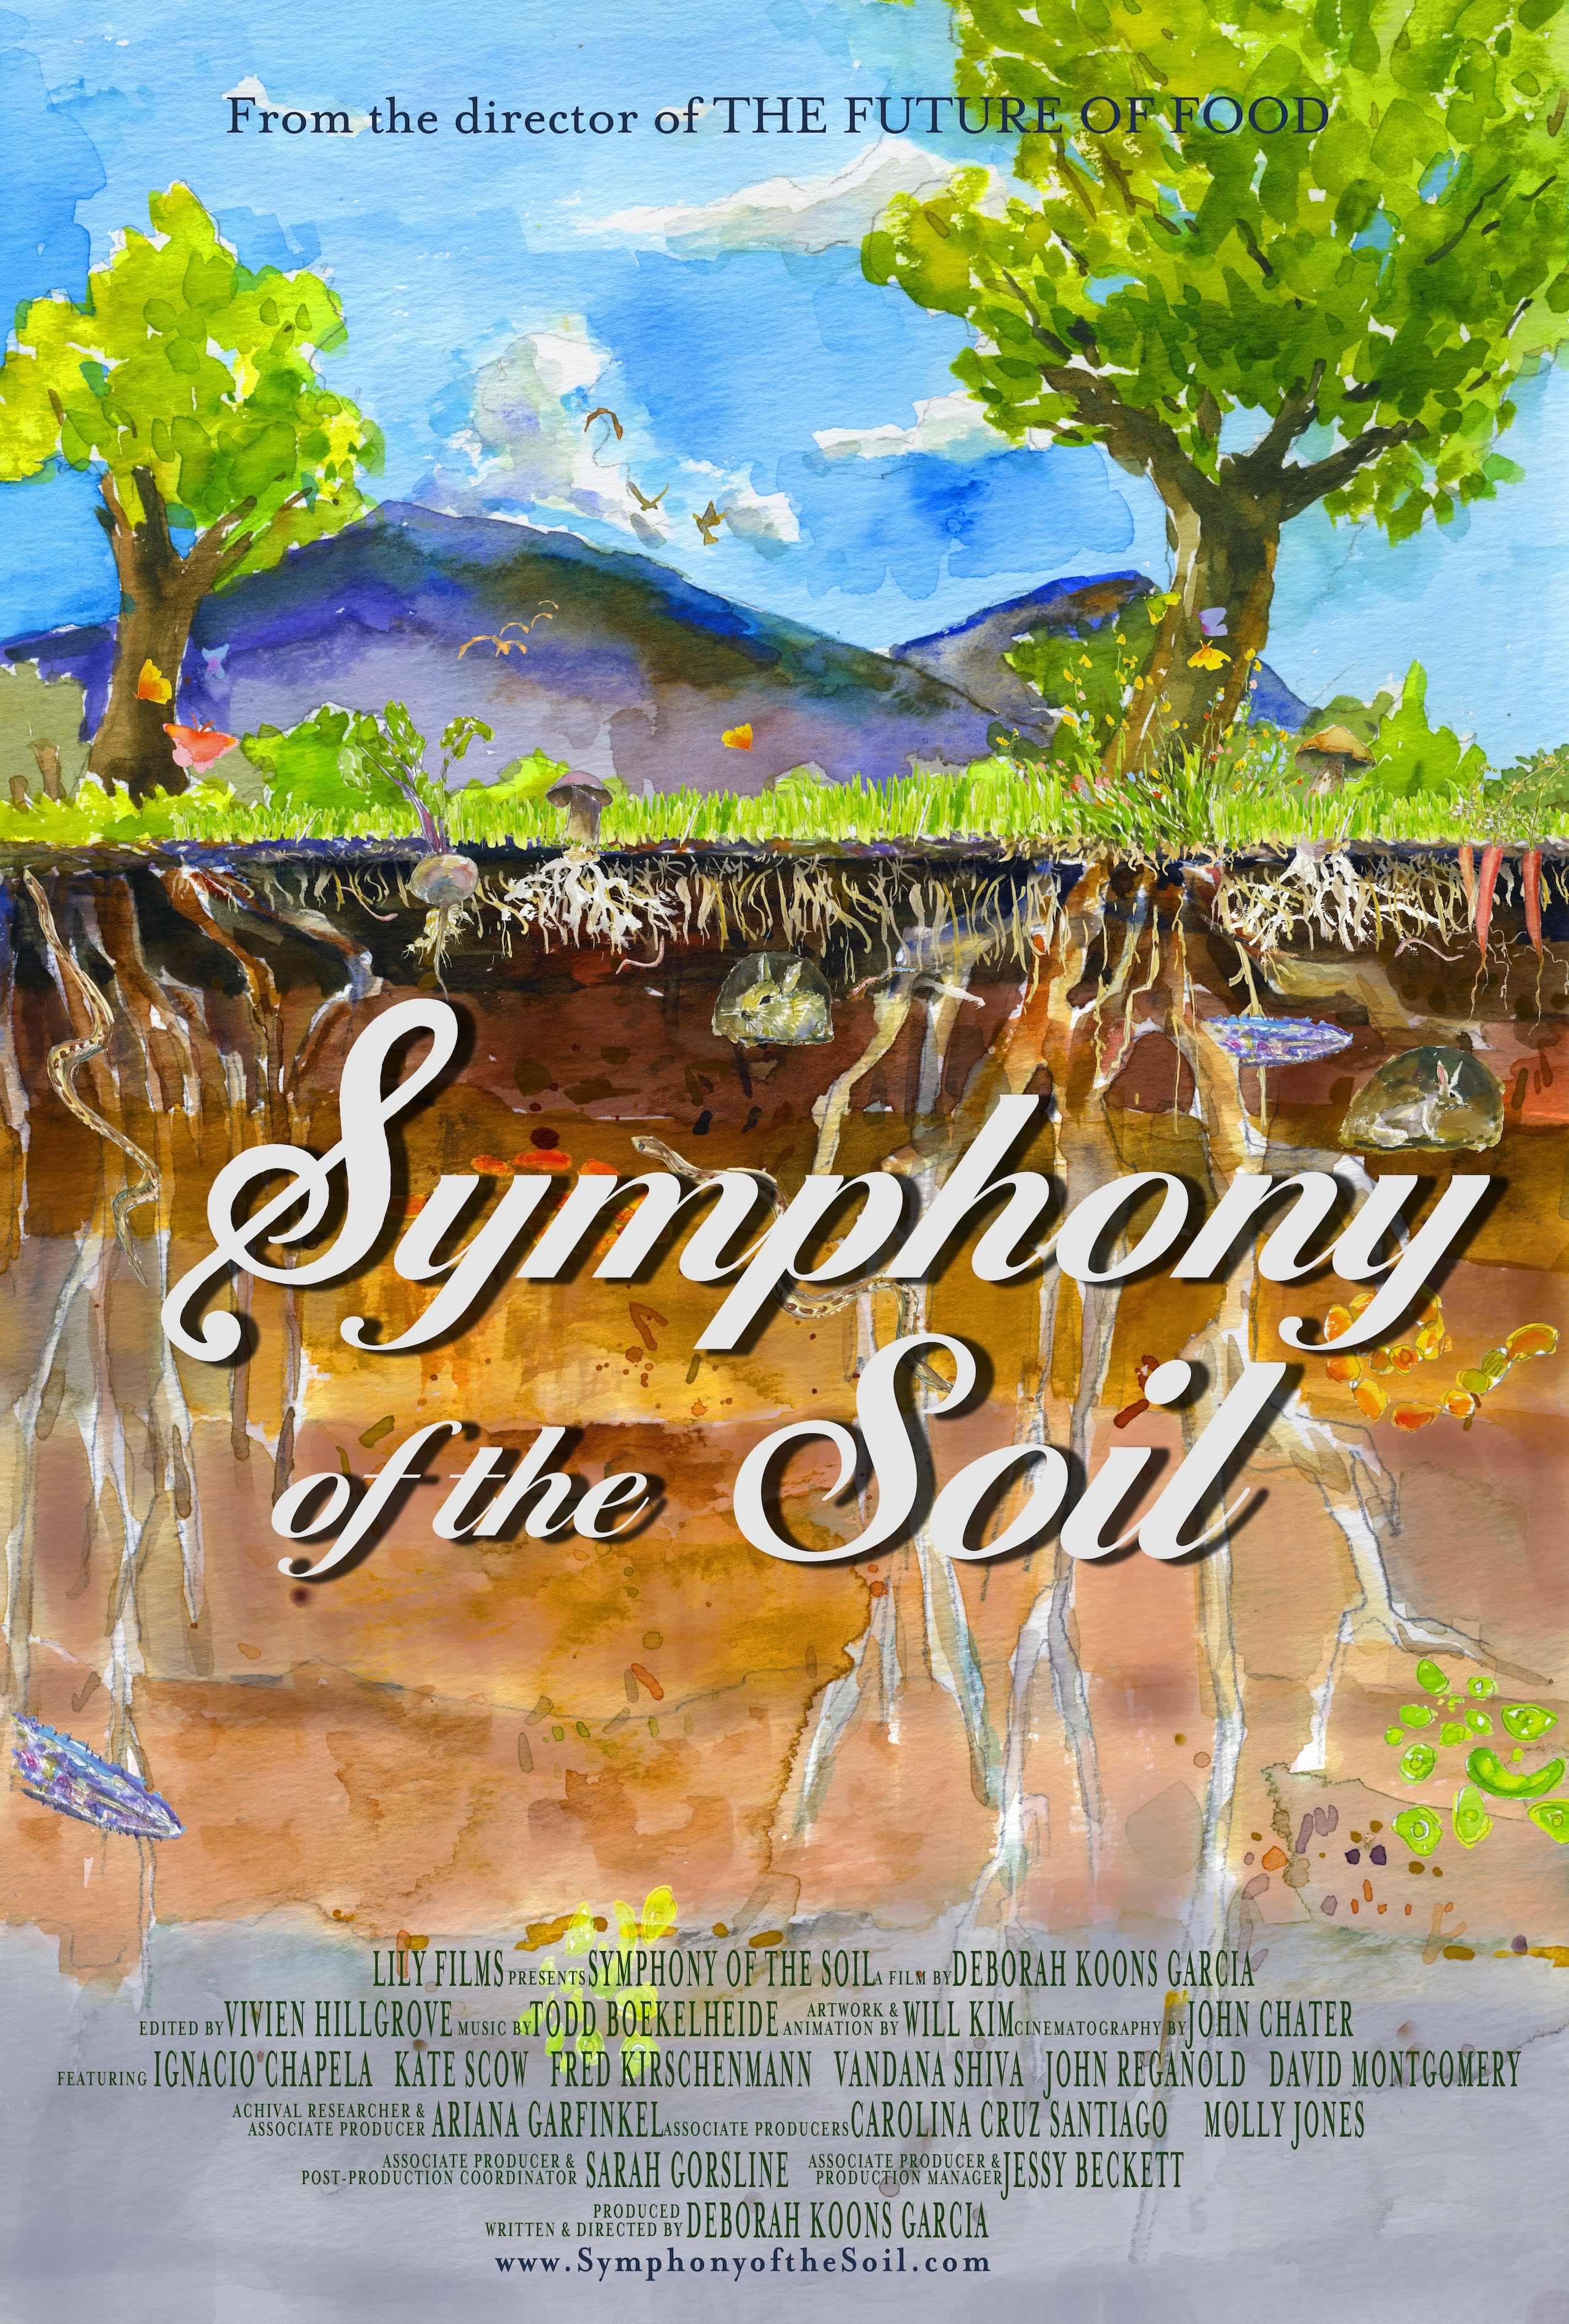 Symphony of the Soil - Image 1